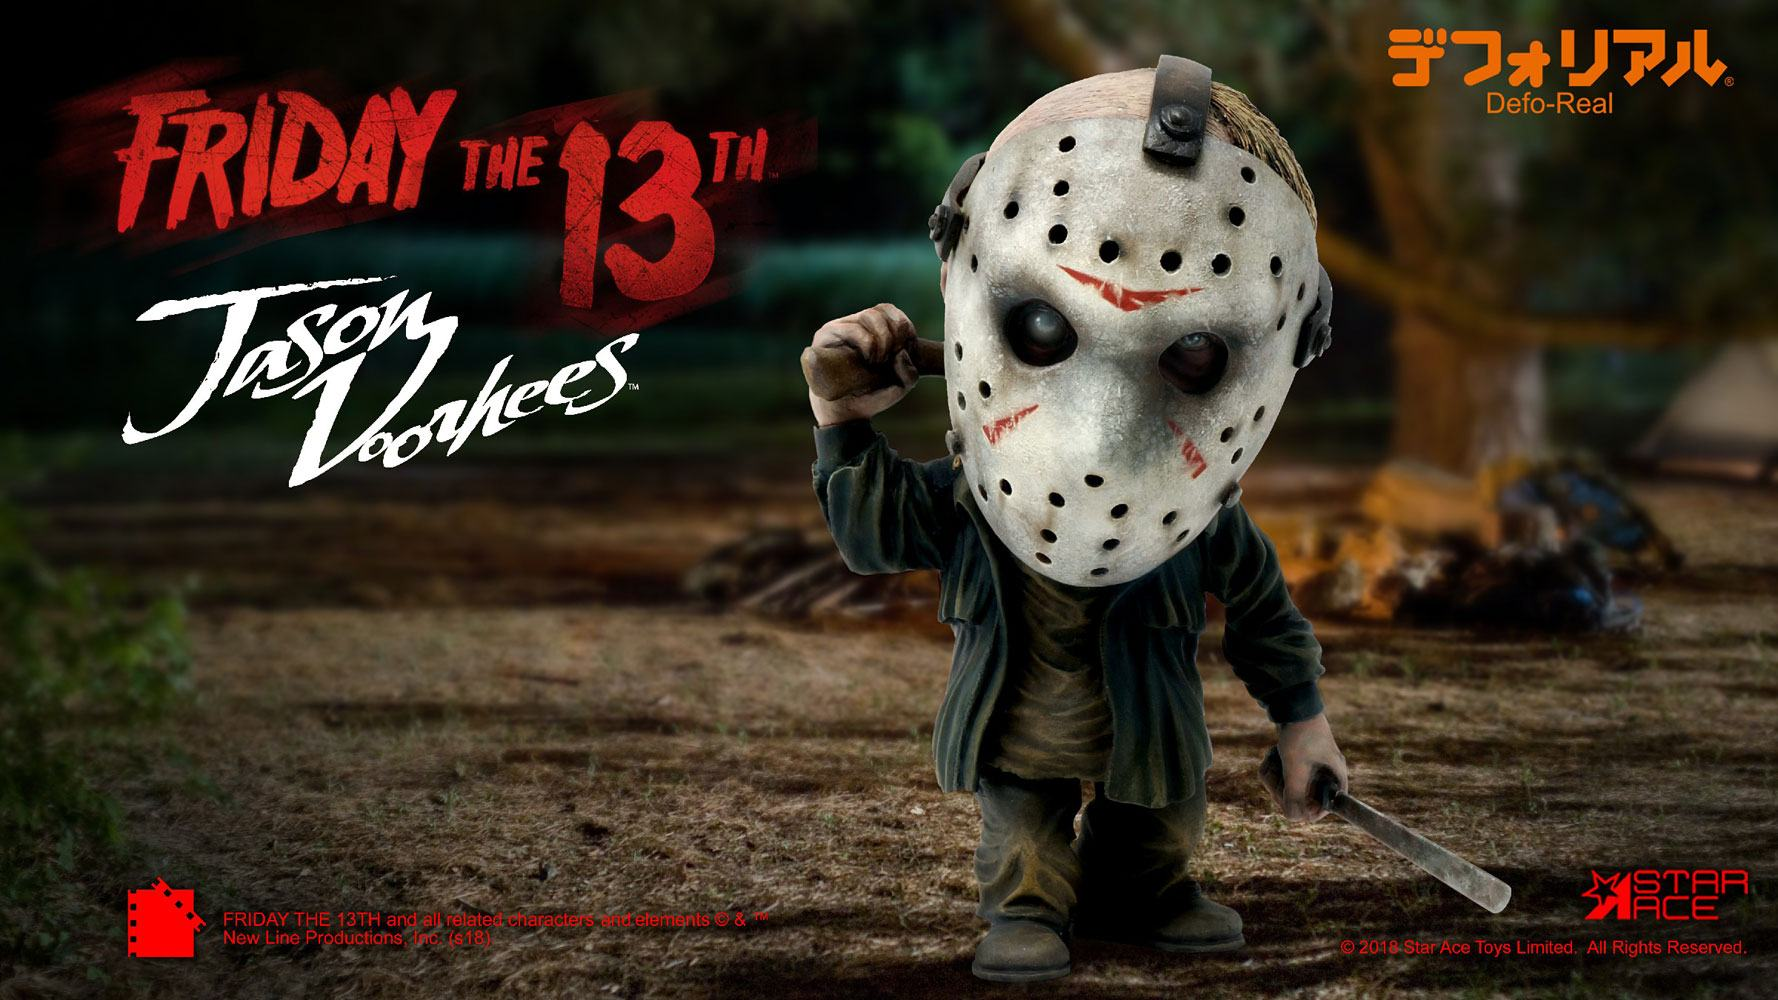 Friday the 13th Defo-Real Series Soft Vinyl Figure Jason Voorhees Normal Version 15 cm